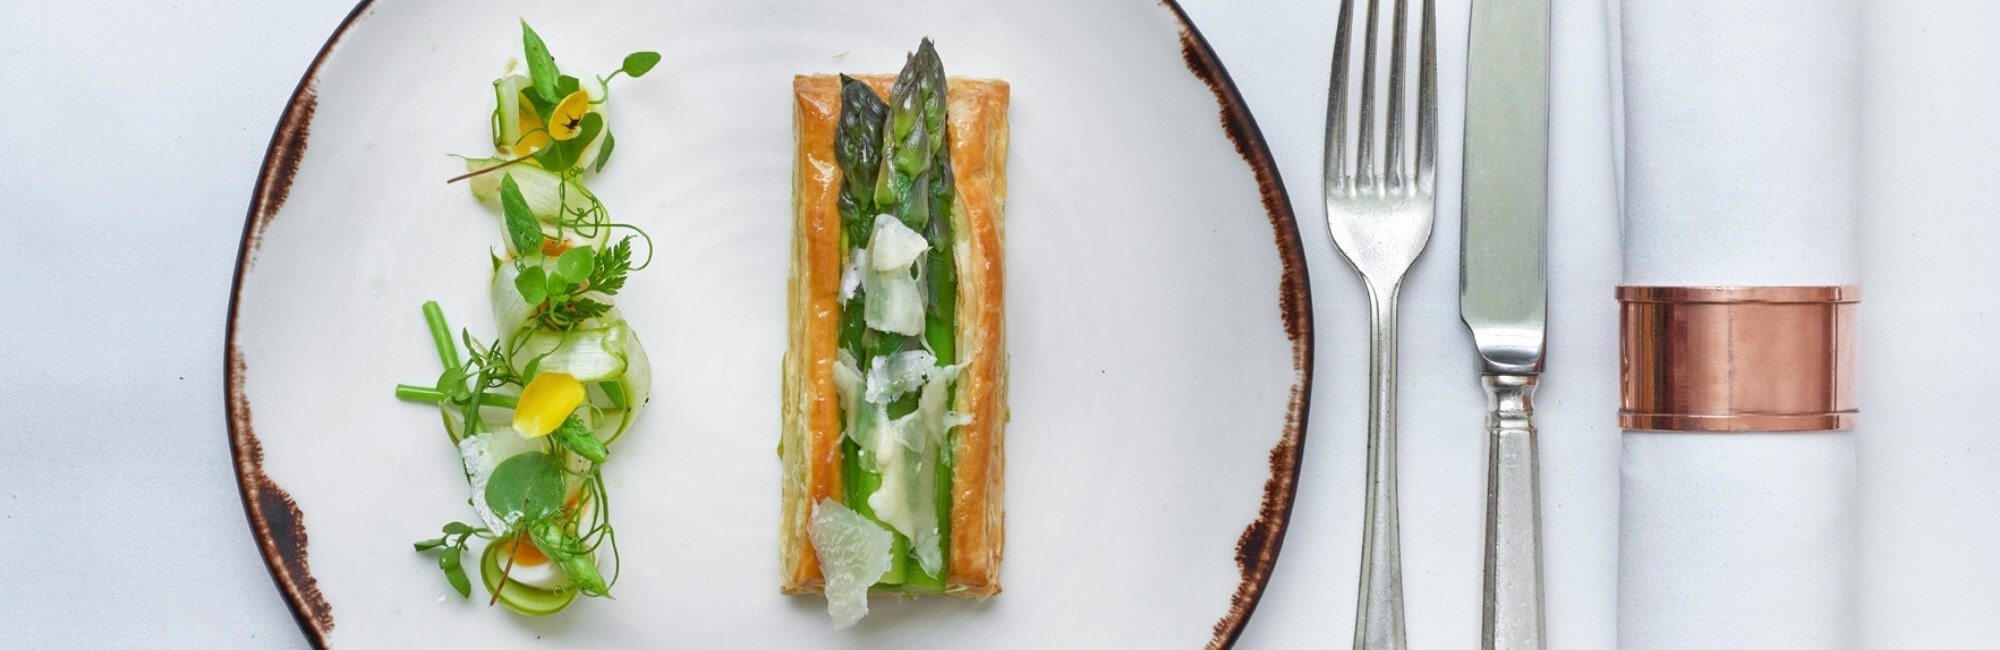 Norfolk Asparagus dishes available on the menu at 34 Mayfair, London